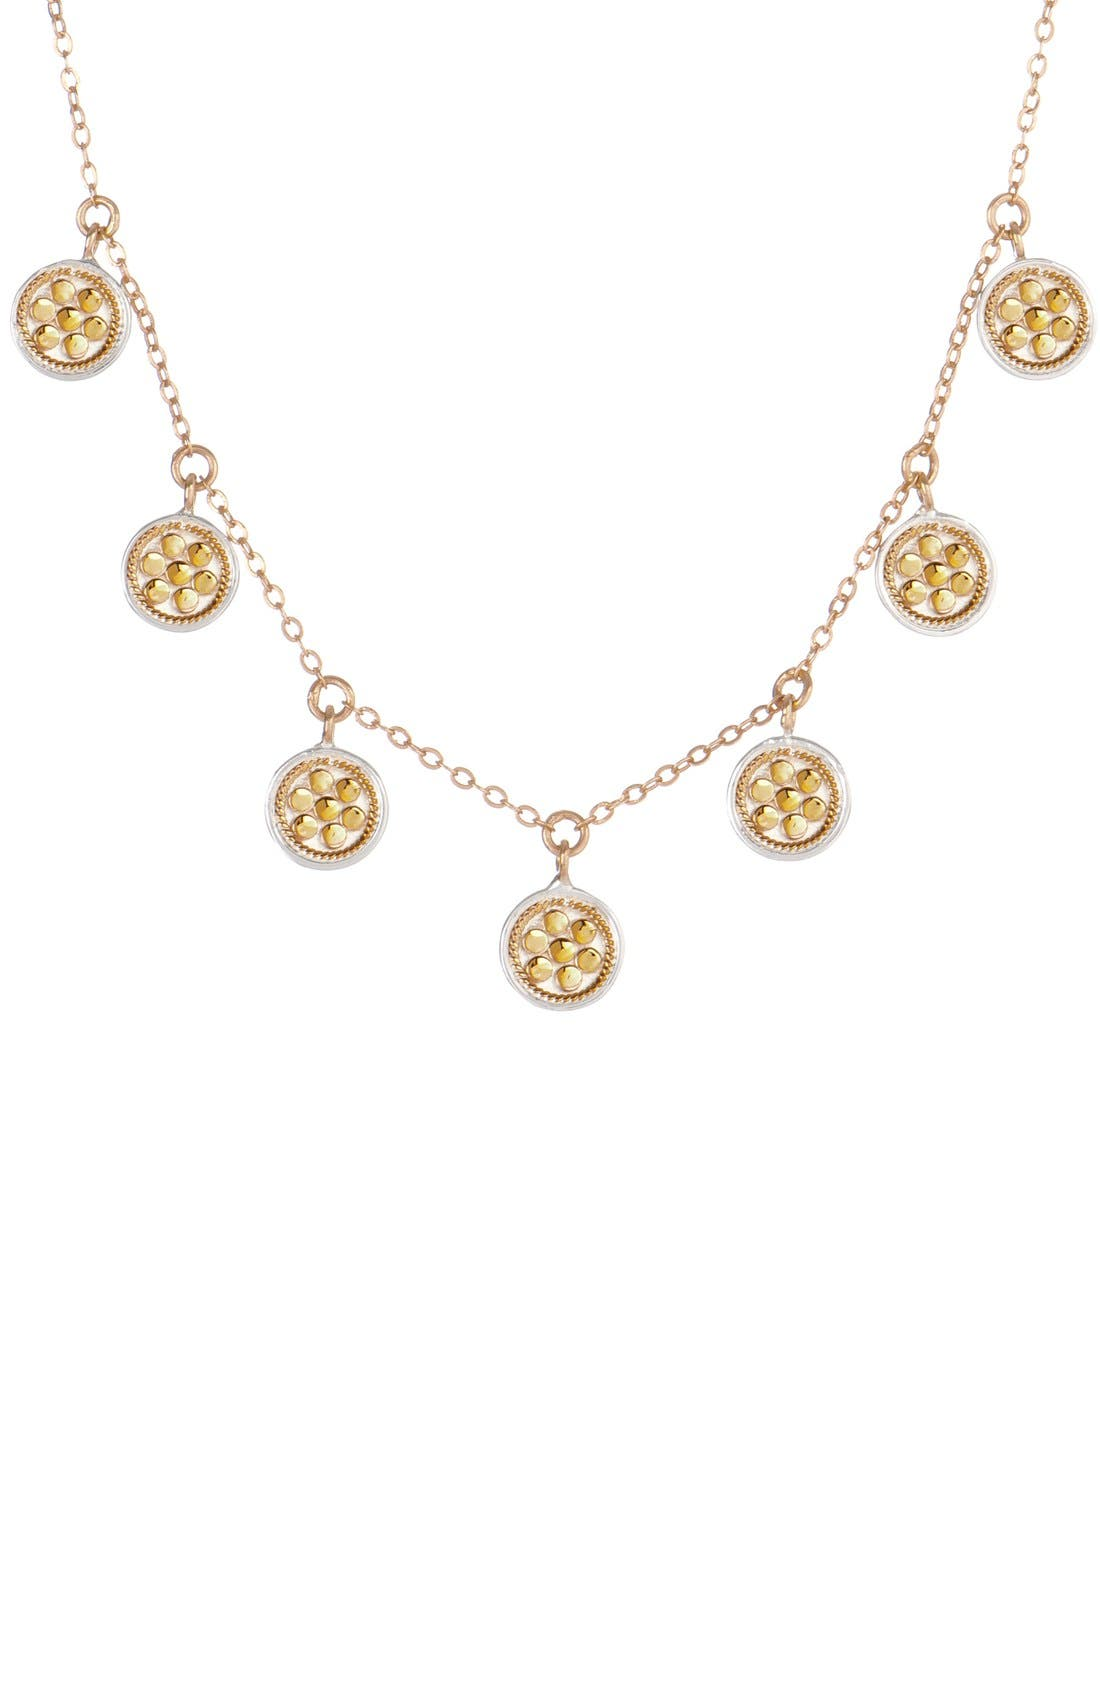 Main Image - Anna Beck 'Gili' Charm Necklace (Nordstrom Exclusive)